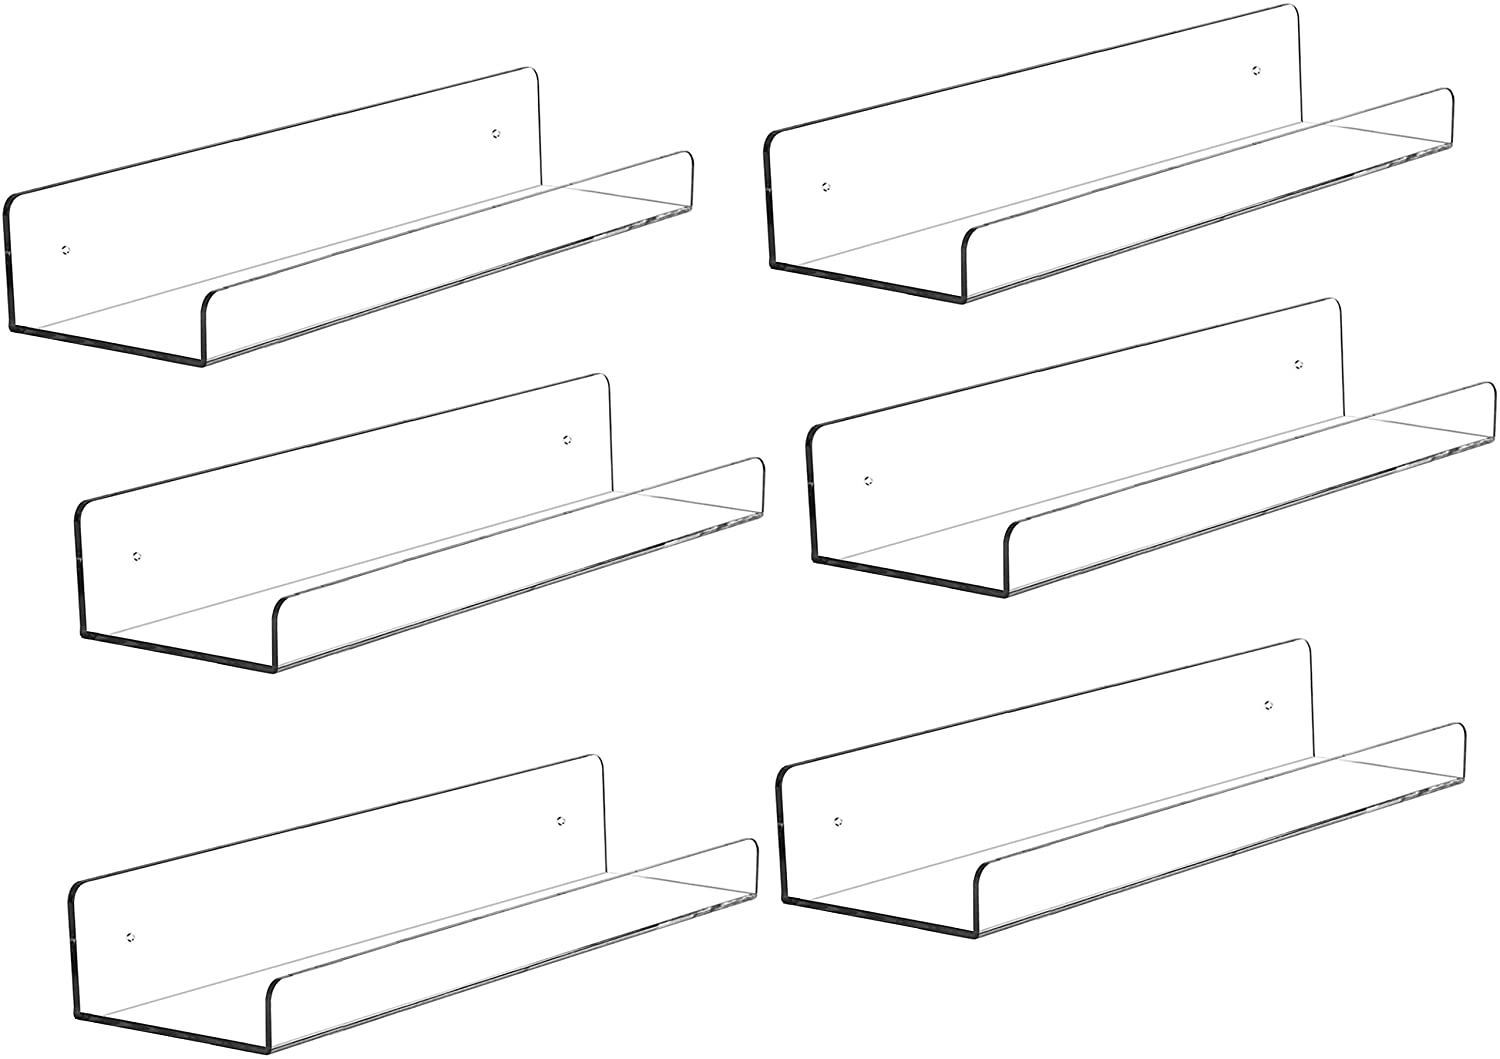 """Cq acrylic 15"""" Acrylic Floating Wall Ledge Shelf,Floating Book Shelves for Kids Room,Clear Bathroom Shelves,Great for Living Room, Office, Bedroom, Bathroom, Kitchen,Set of 6"""